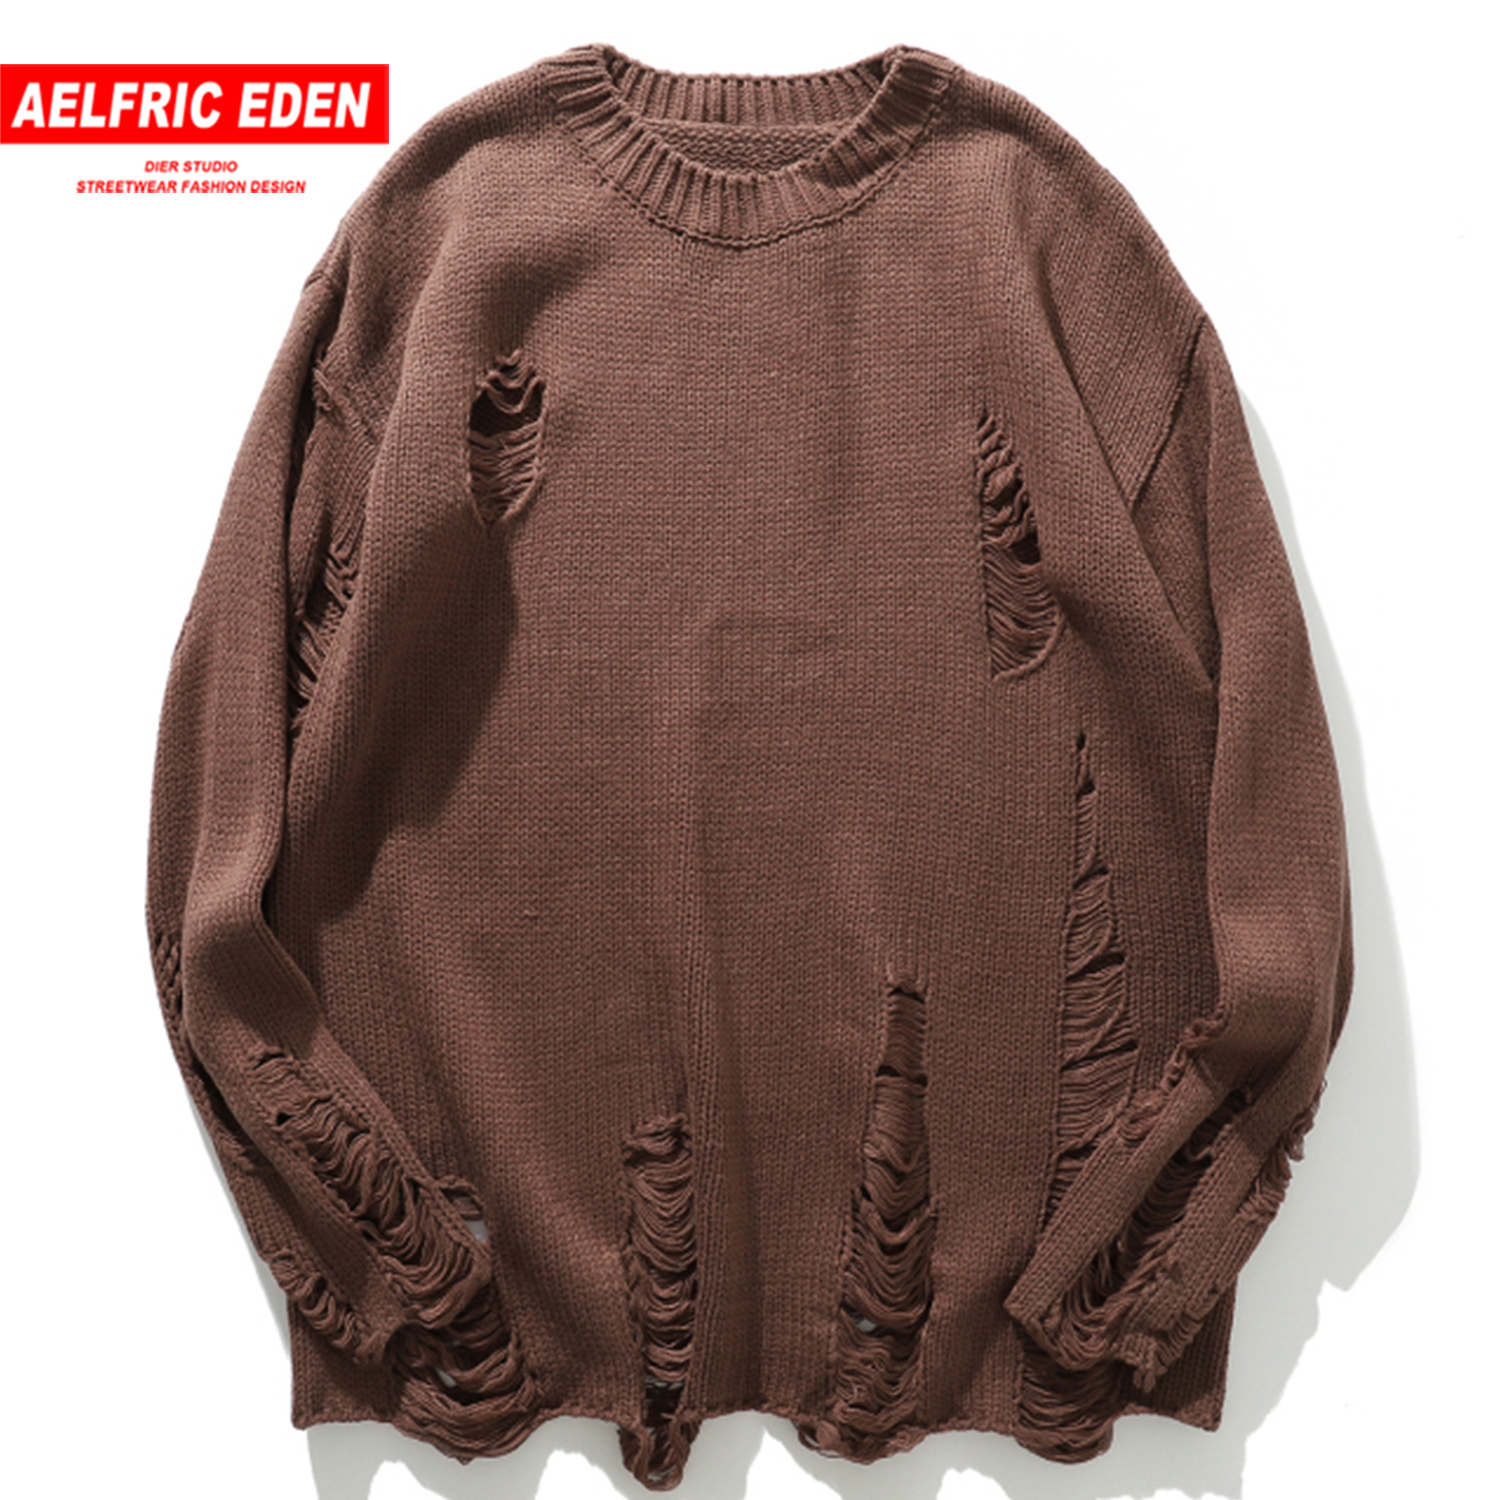 Aelfric Eden Solid Ripped Knitted Men Gothic Sweaters 2019 Harajuku Hip Hop Tops Fashion Streetwear Casual Male Pullover Outwear